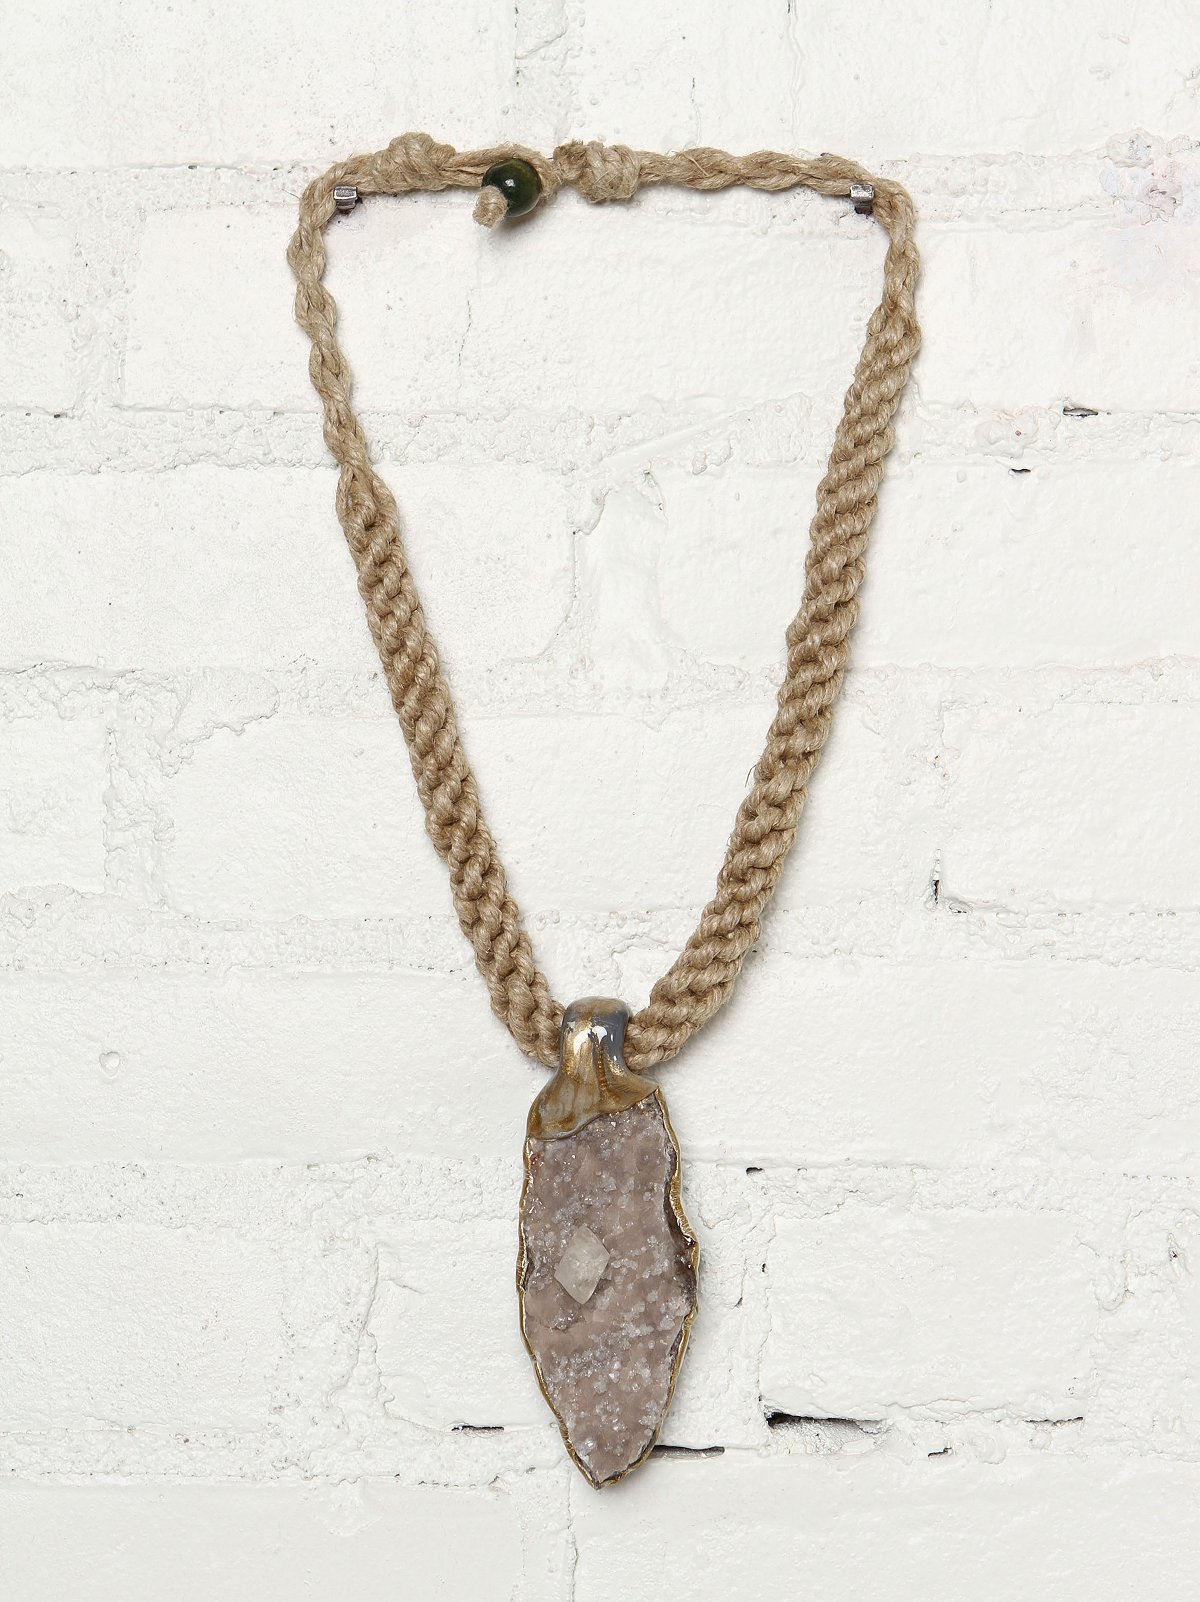 Vintage Woven Rope Necklace With Stone